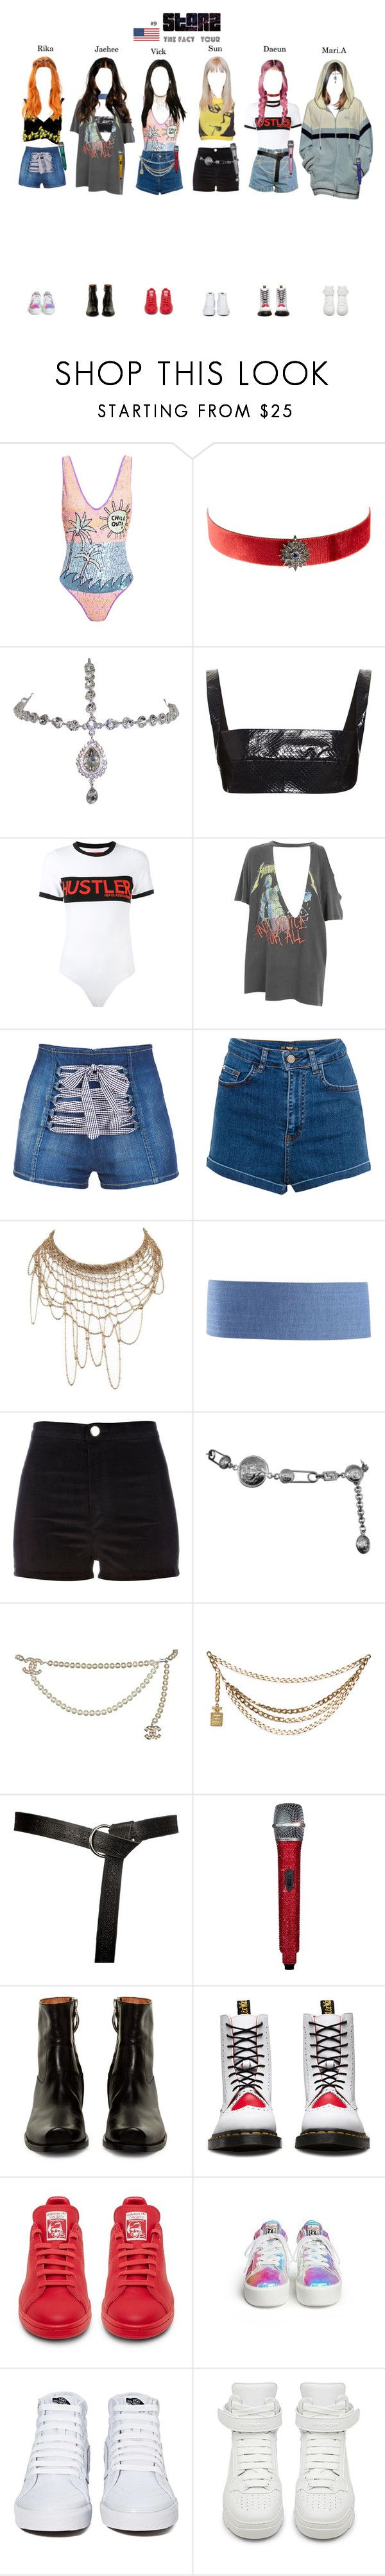 """""""THE FACT TOUR    New York, USA"""" by starz-official ❤ liked on Polyvore featuring Emma Mulholland, FARIS, Artisan, Dion Lee, Hood by Air, And Finally, Pull&Bear, Martha Medeiros, River Island and Versace"""